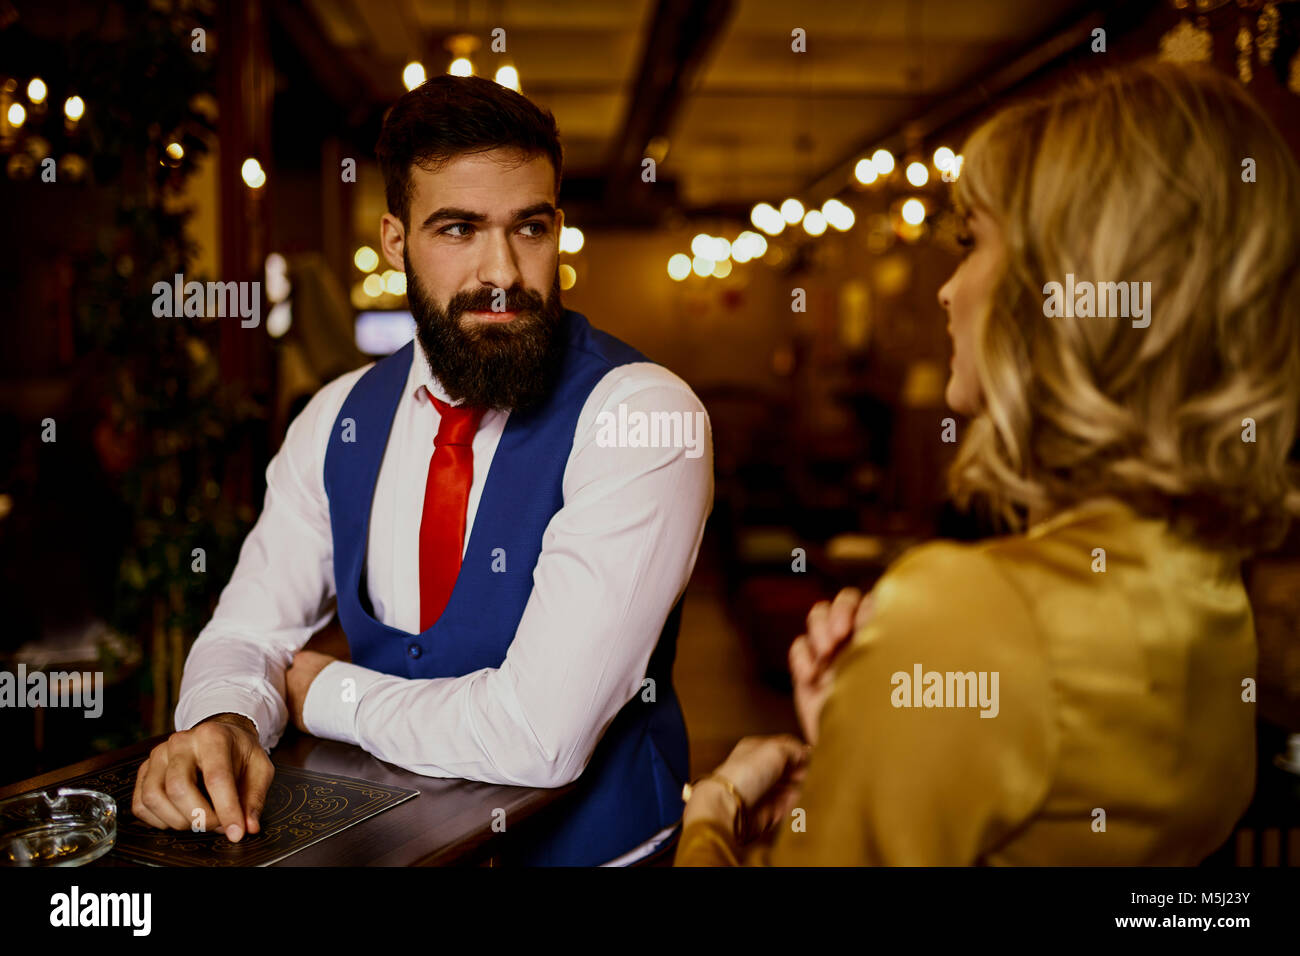 Fashionable young man looking at woman in a bar - Stock Image